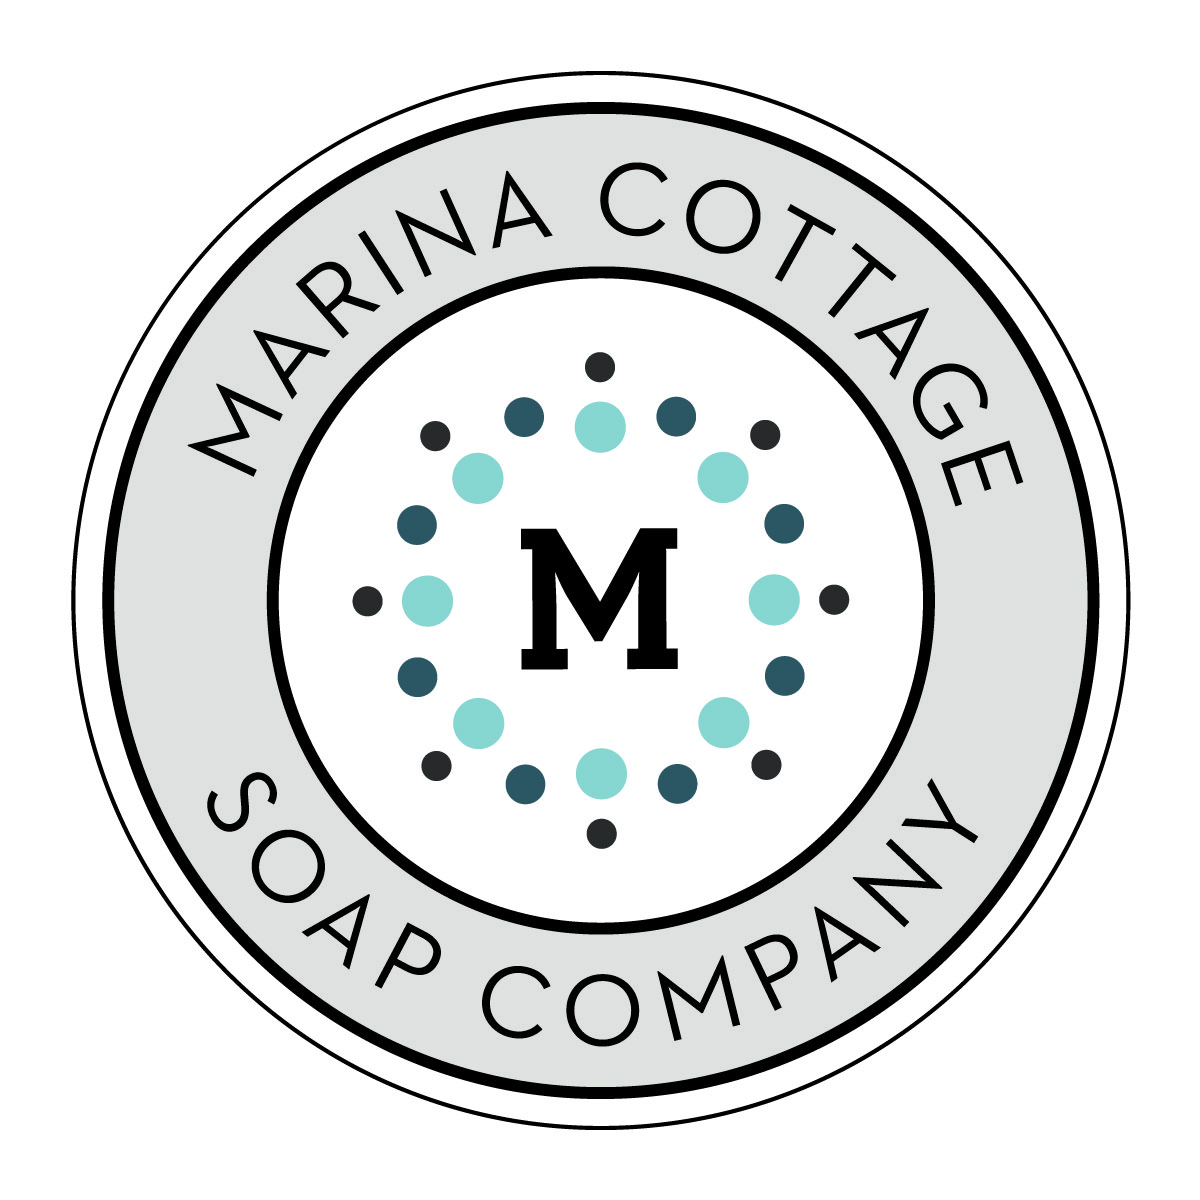 Marina Cottage Soap Co. Inc.